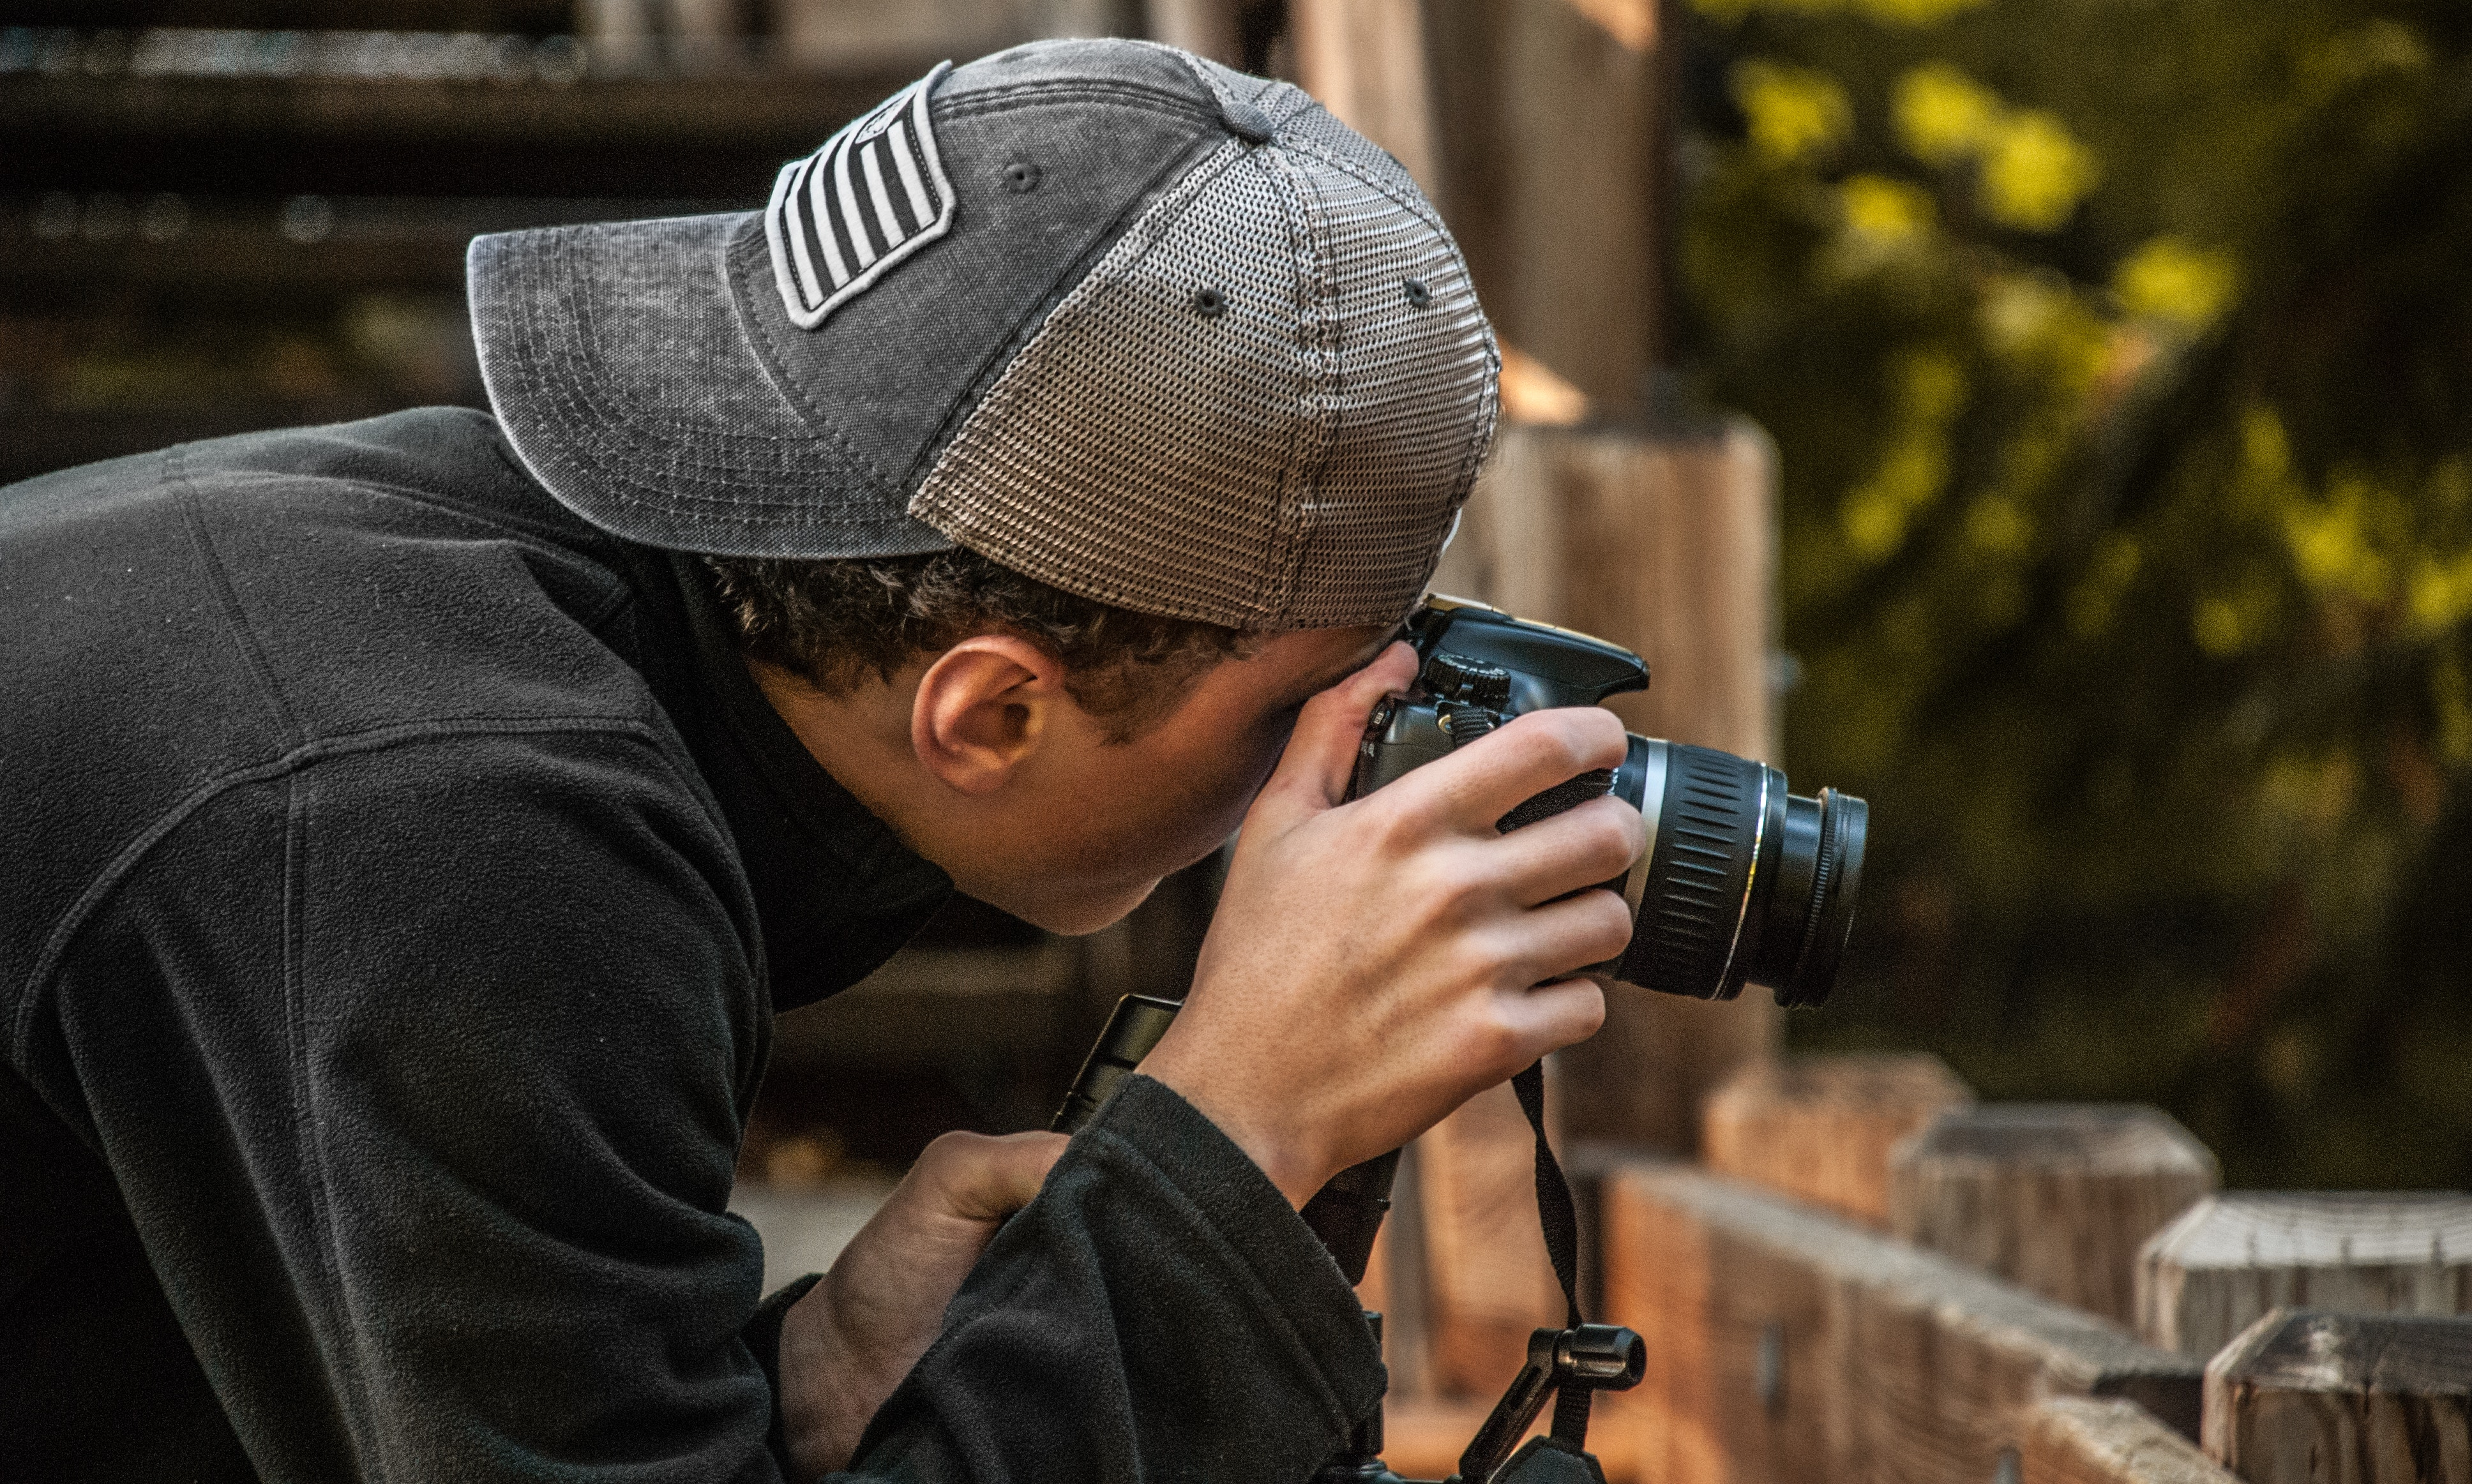 Depth of Field Photography of Man Holding Dslr Camera, Person, Work, Wear, Trees, HQ Photo